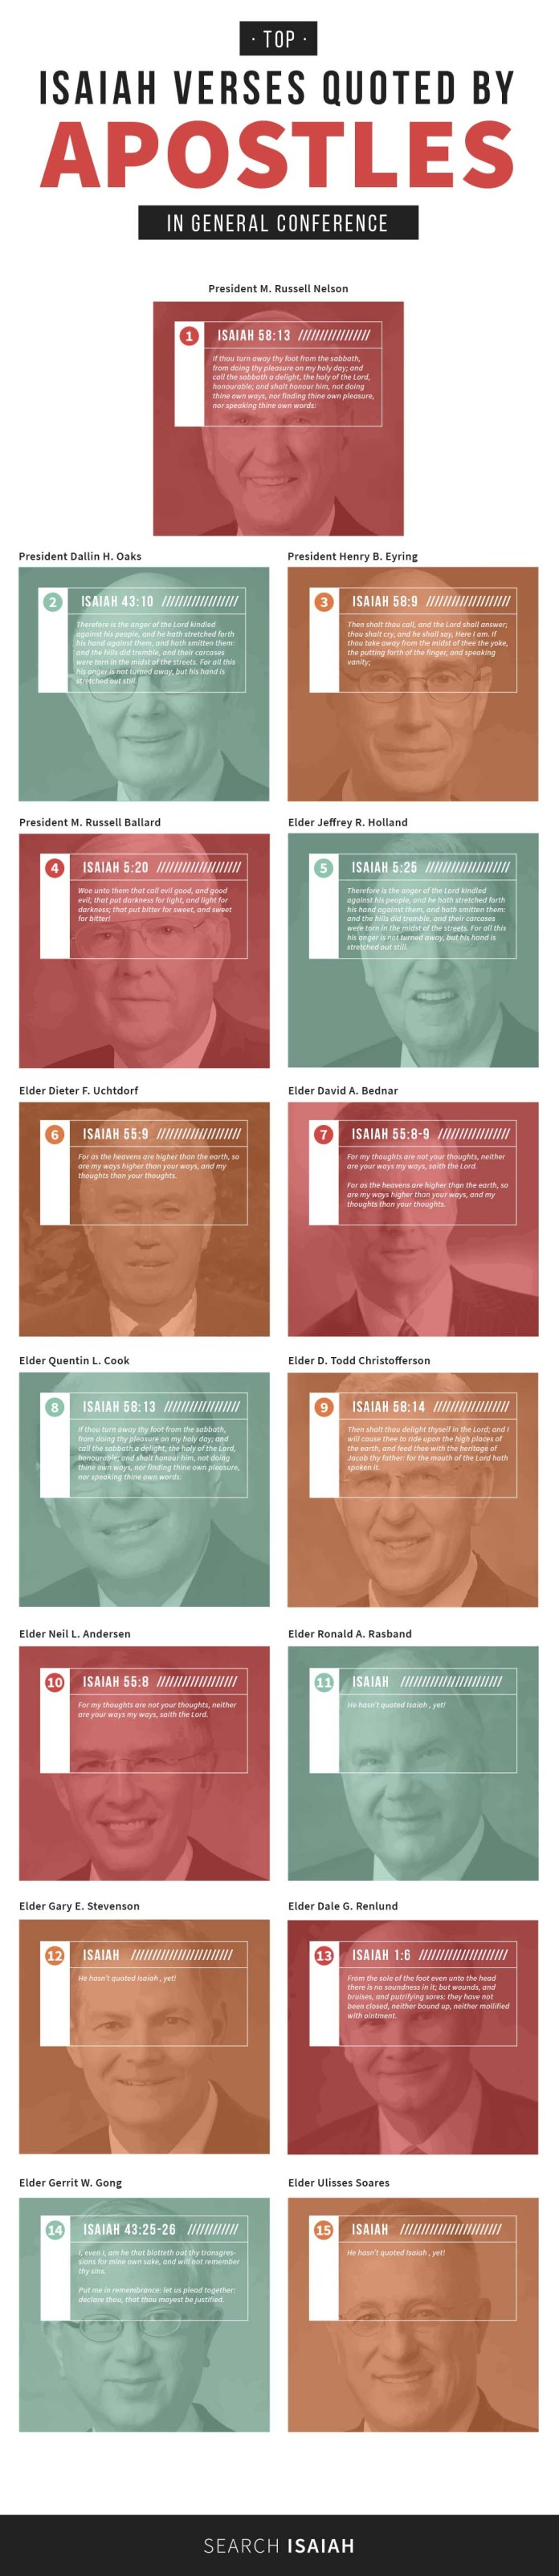 Check out the Isaiah Verses quotes most by Apostles during General Conference.